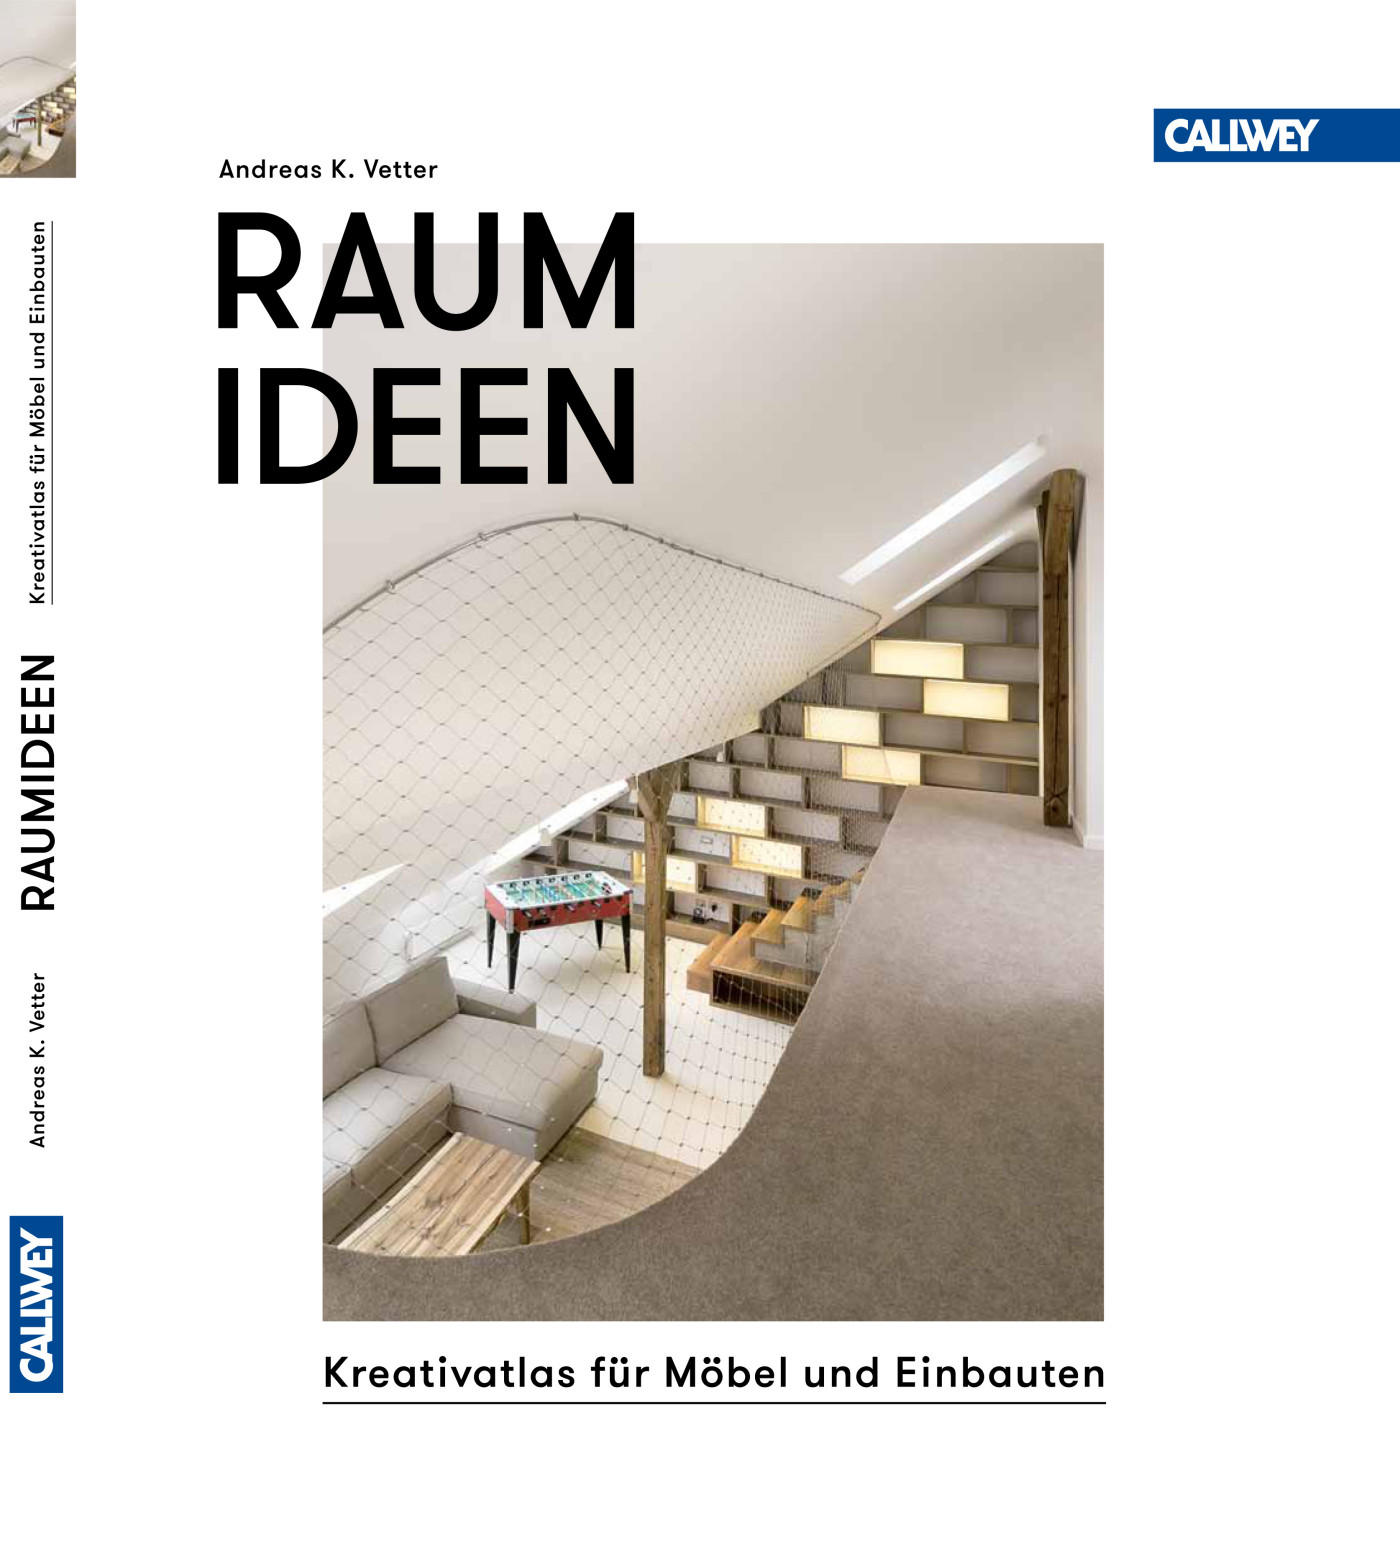 Vetter - Raumideen - Cover-1